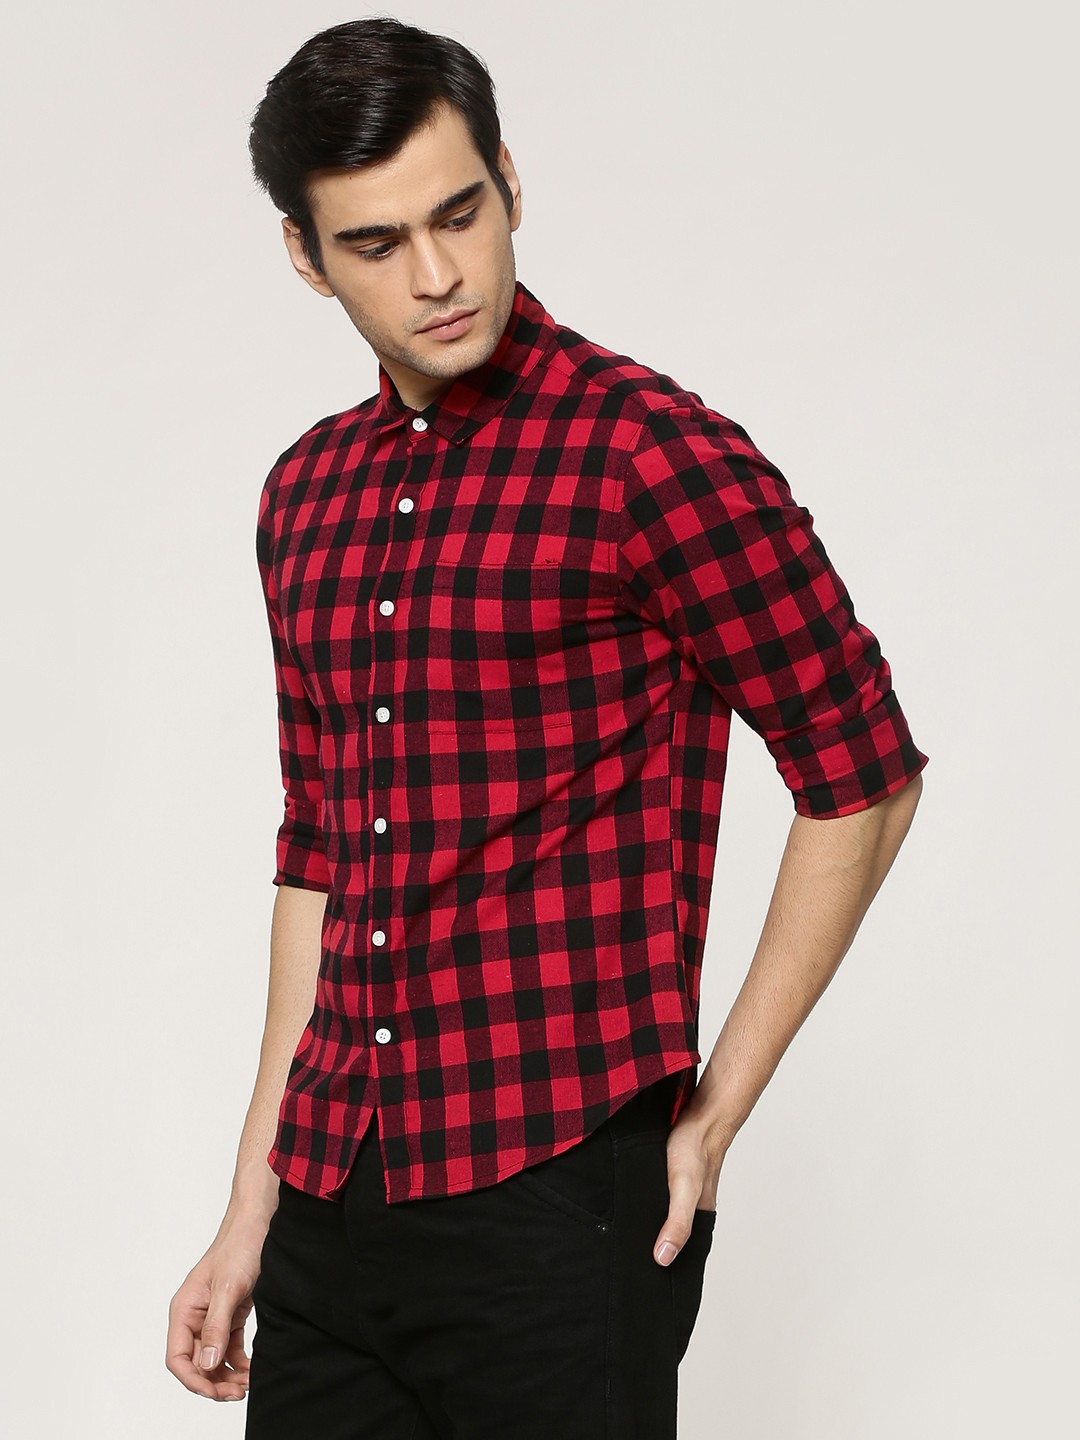 Amazoncom plaid shirts  Clothing  Men Clothing Shoes